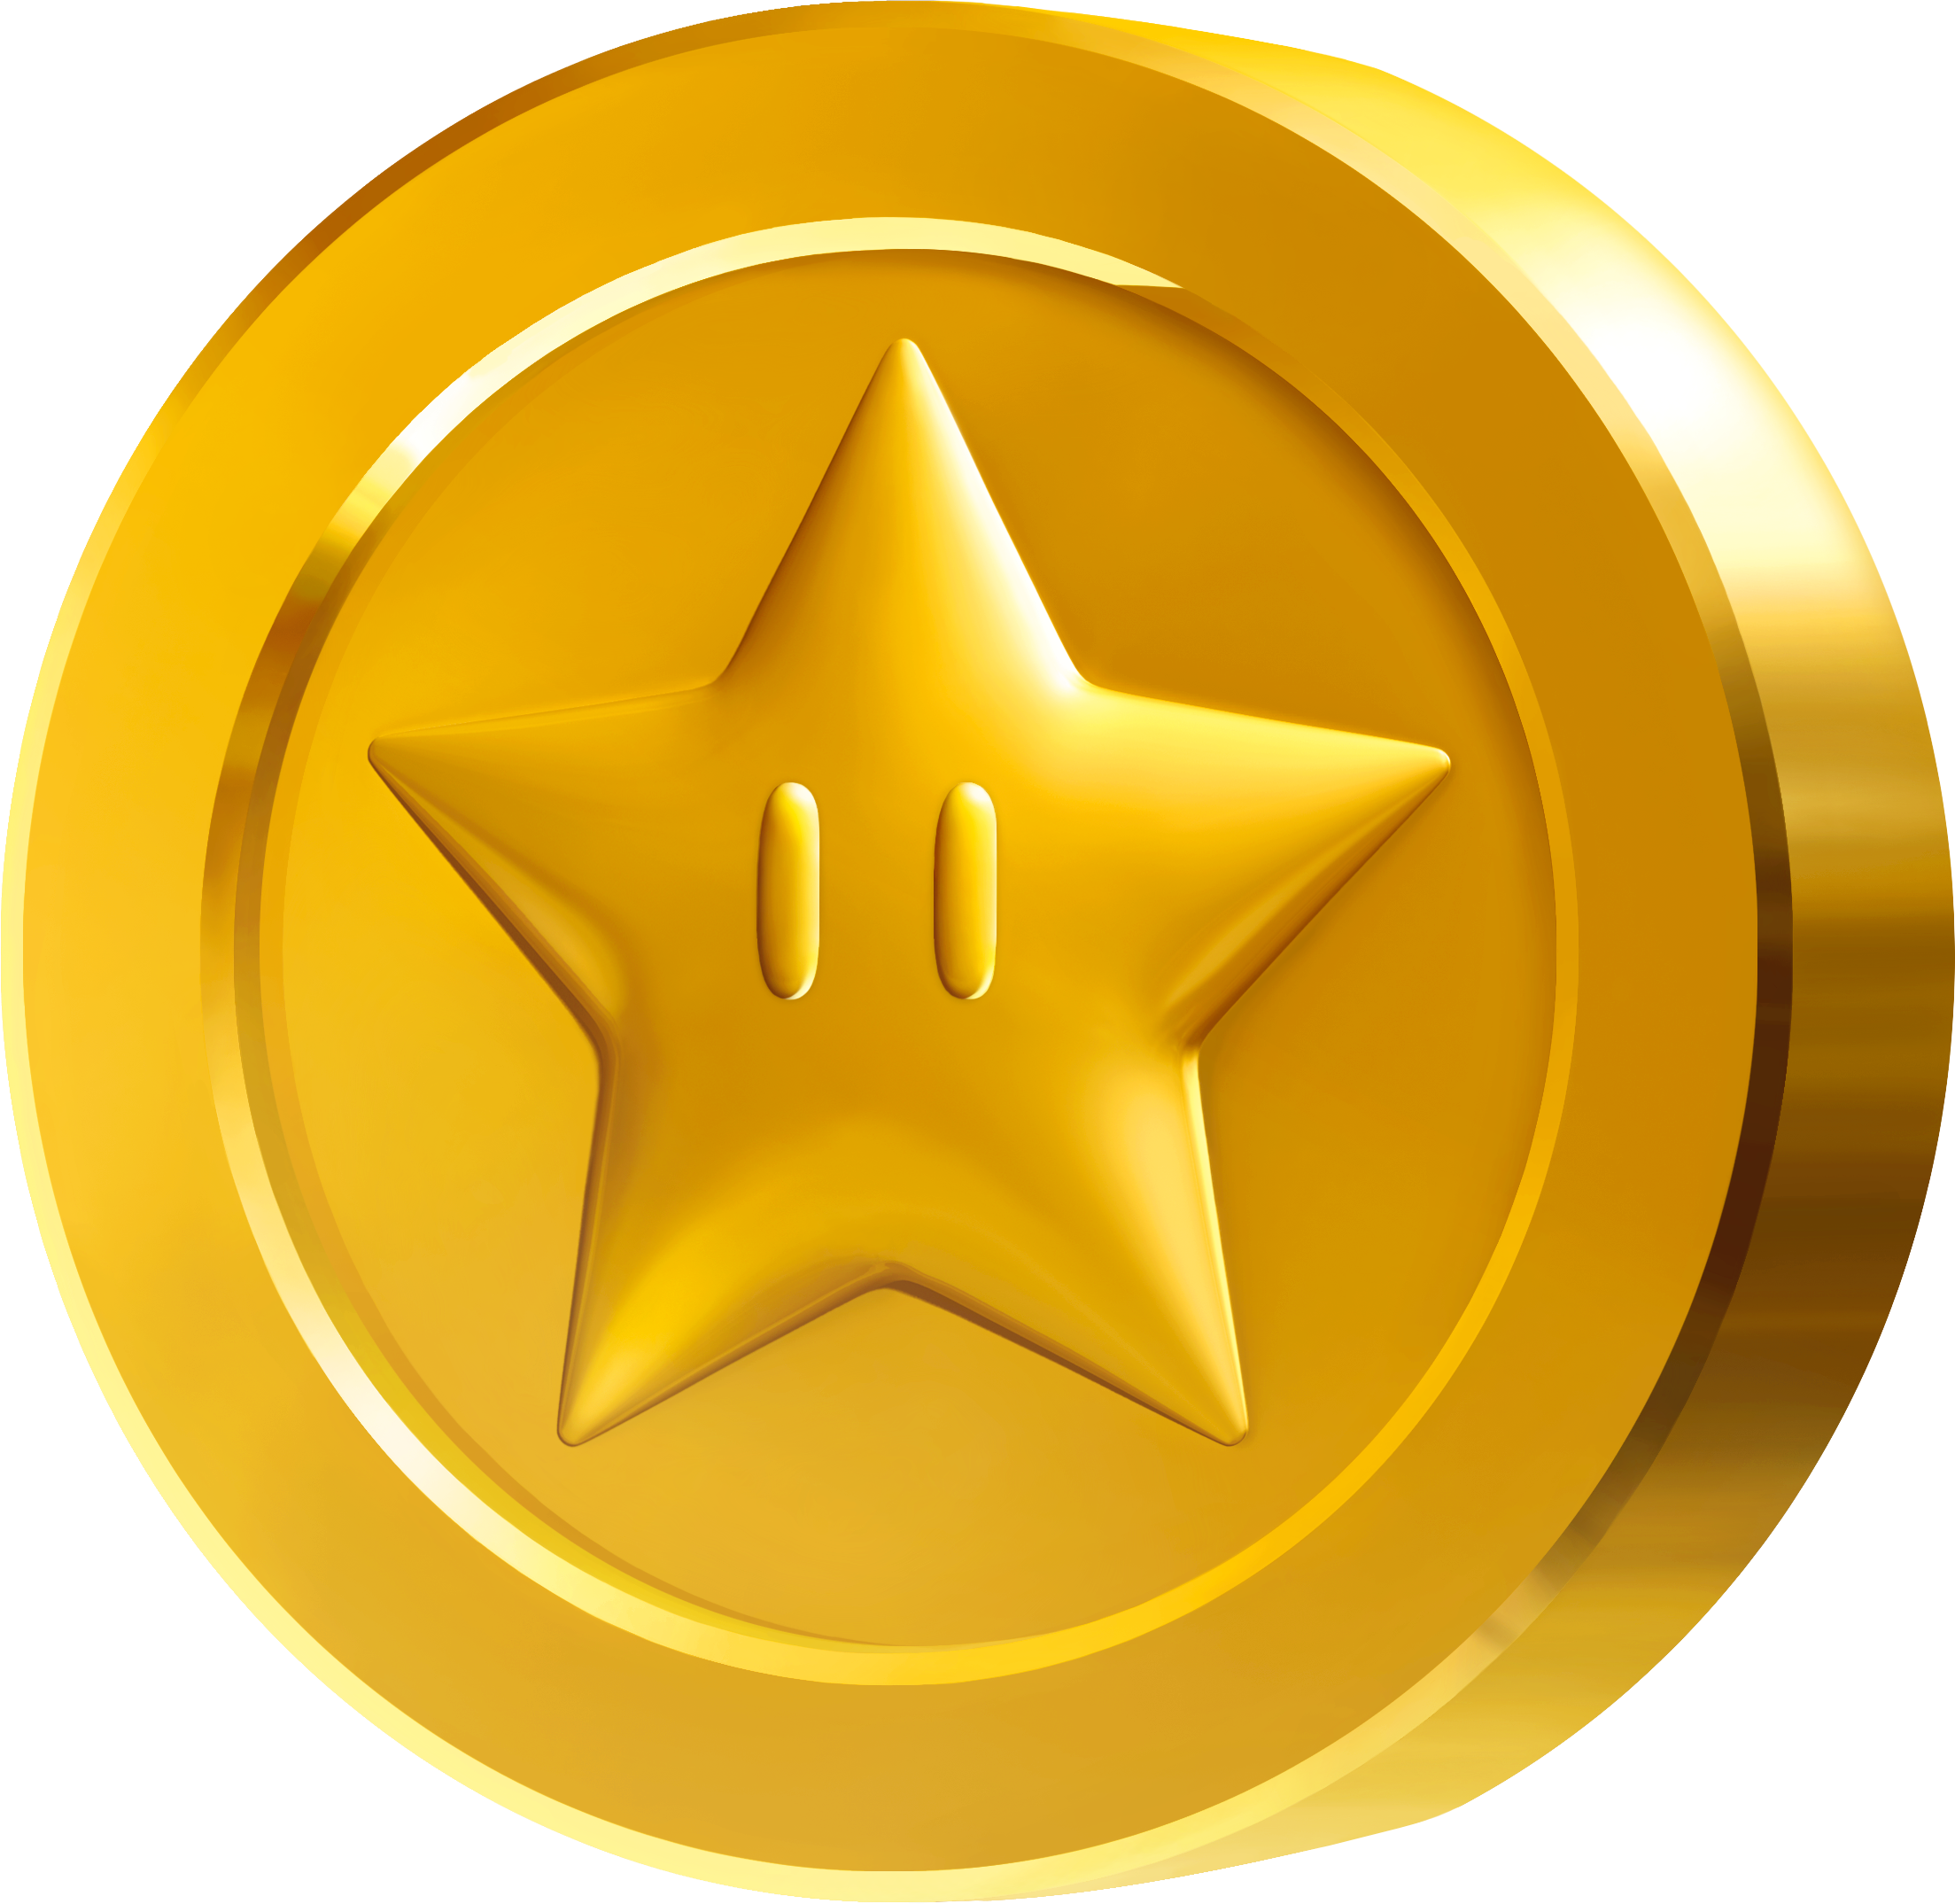 Coin png. Image star mariowiki fandom